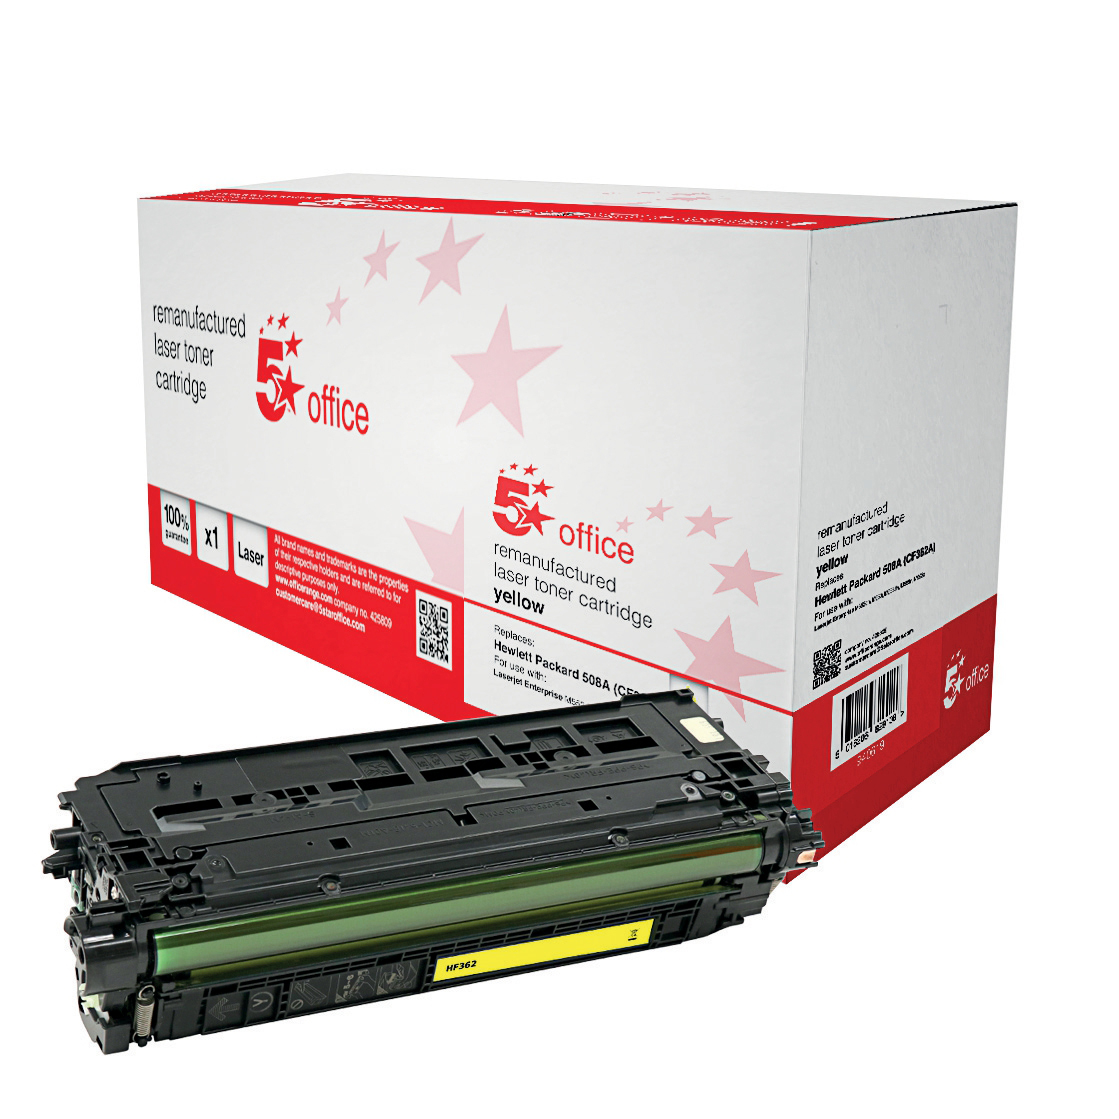 5 Star Office Remanufactured Laser Toner Cartridge Page Life 5000pp Yellow [HP 508A CF362A Alternative]